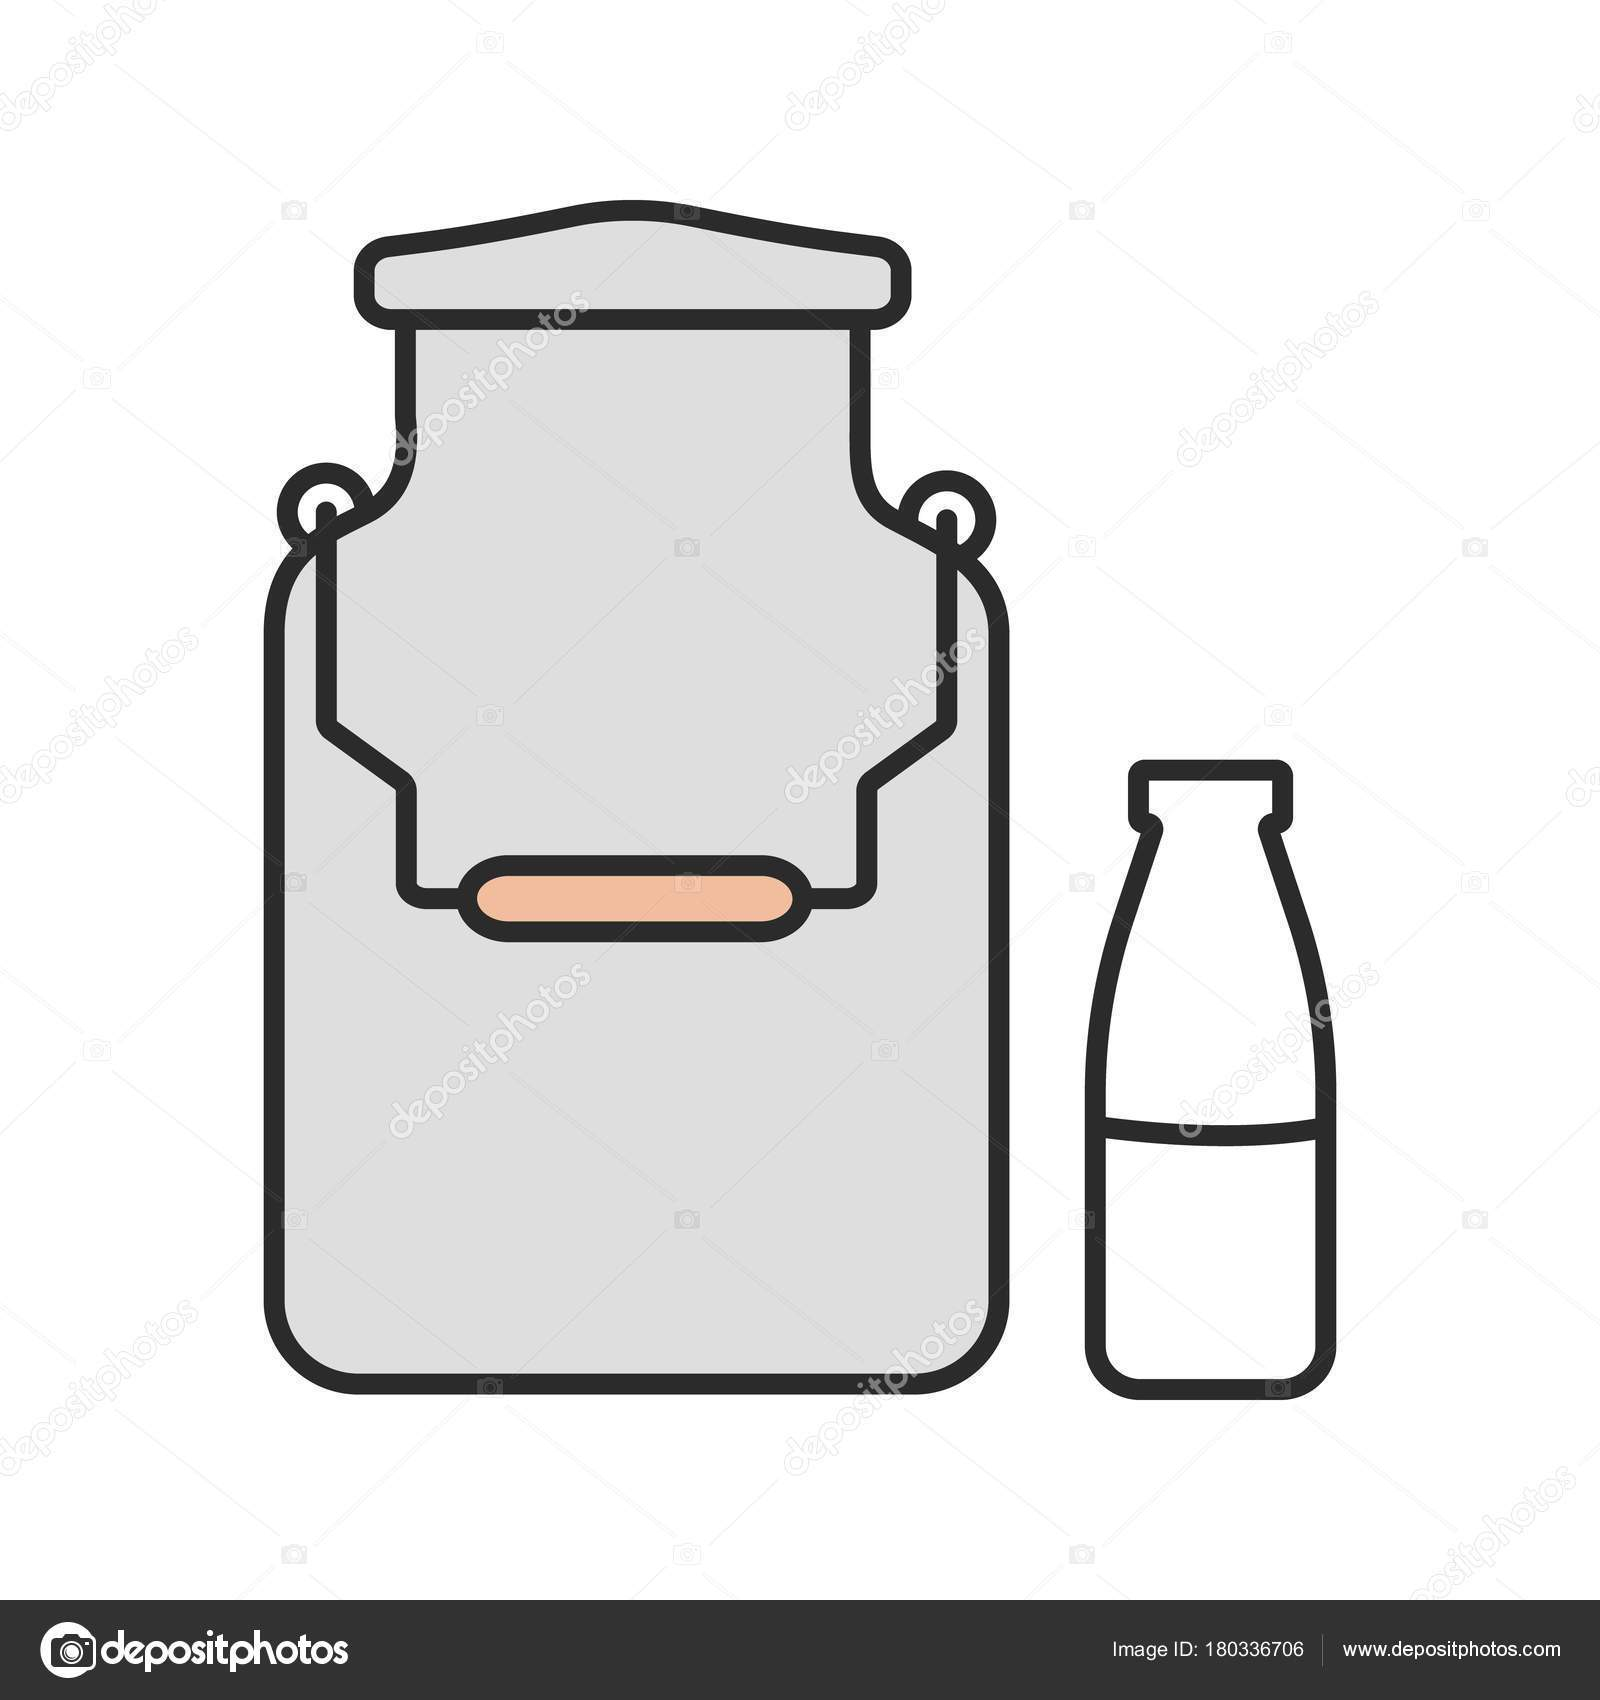 Milk can clipart svg black and white library Milk can and bottle color icon » Clipart Portal svg black and white library